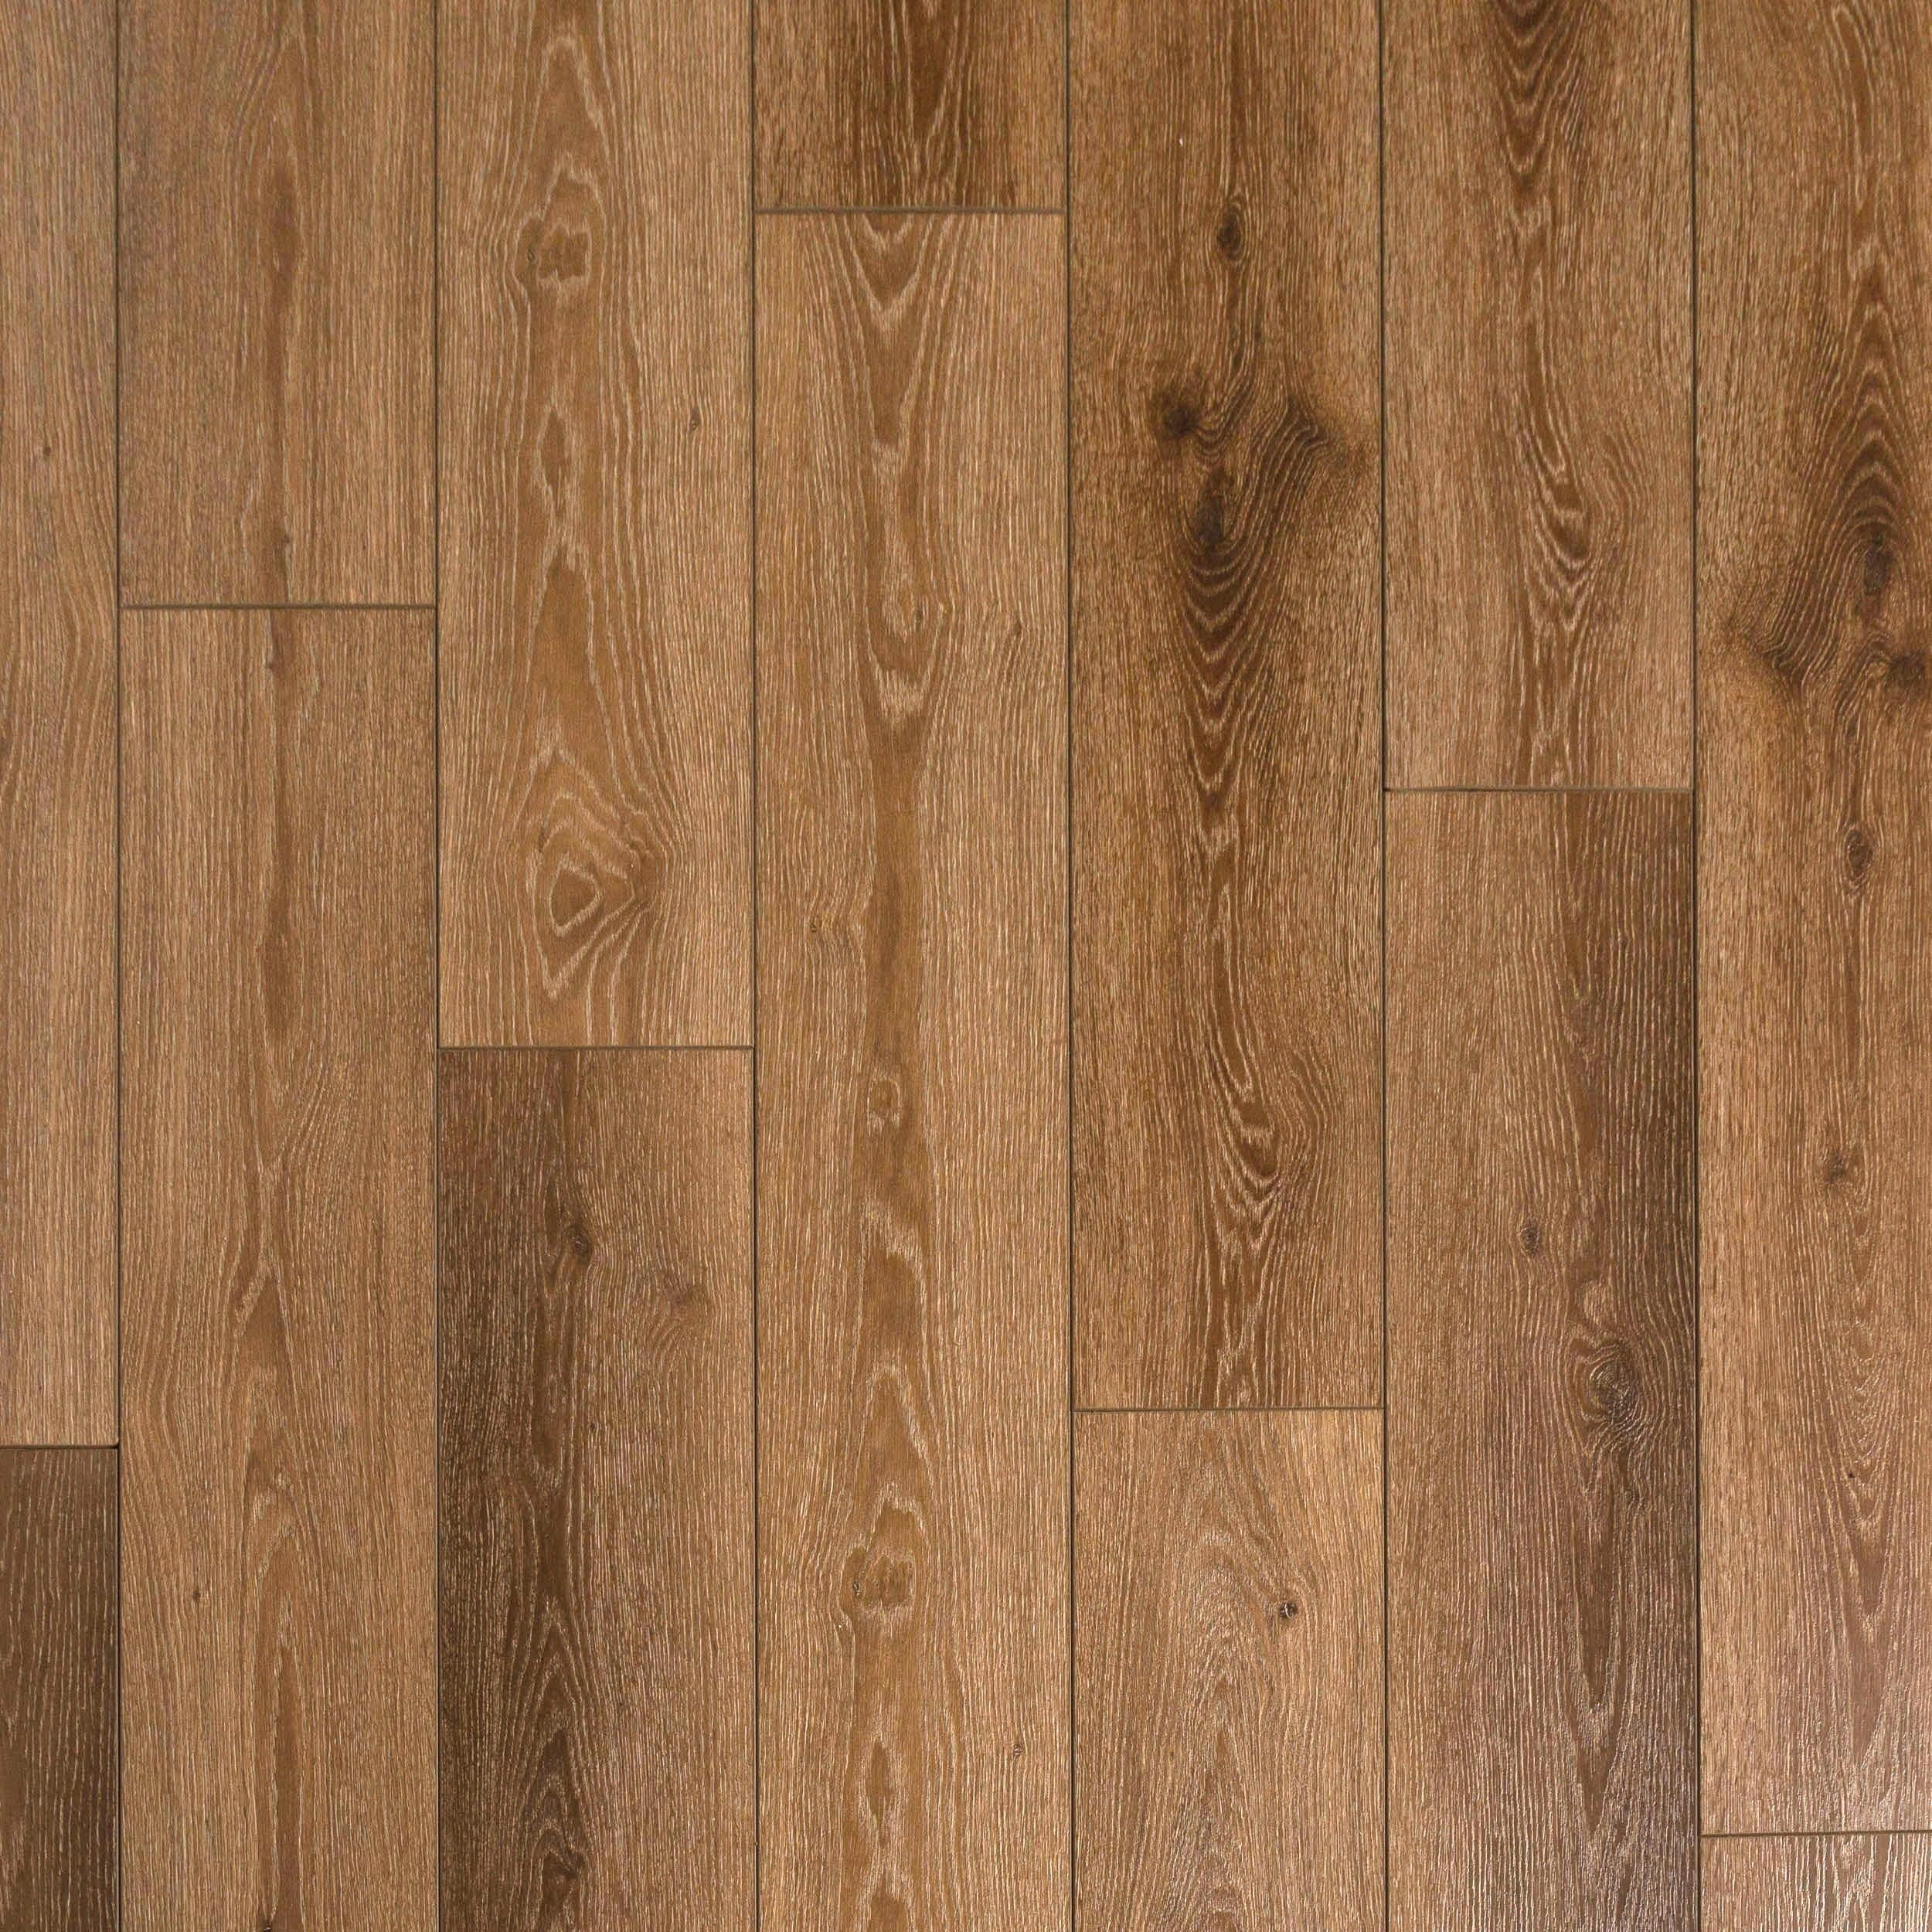 Amazing light wood flooring take a look at our review